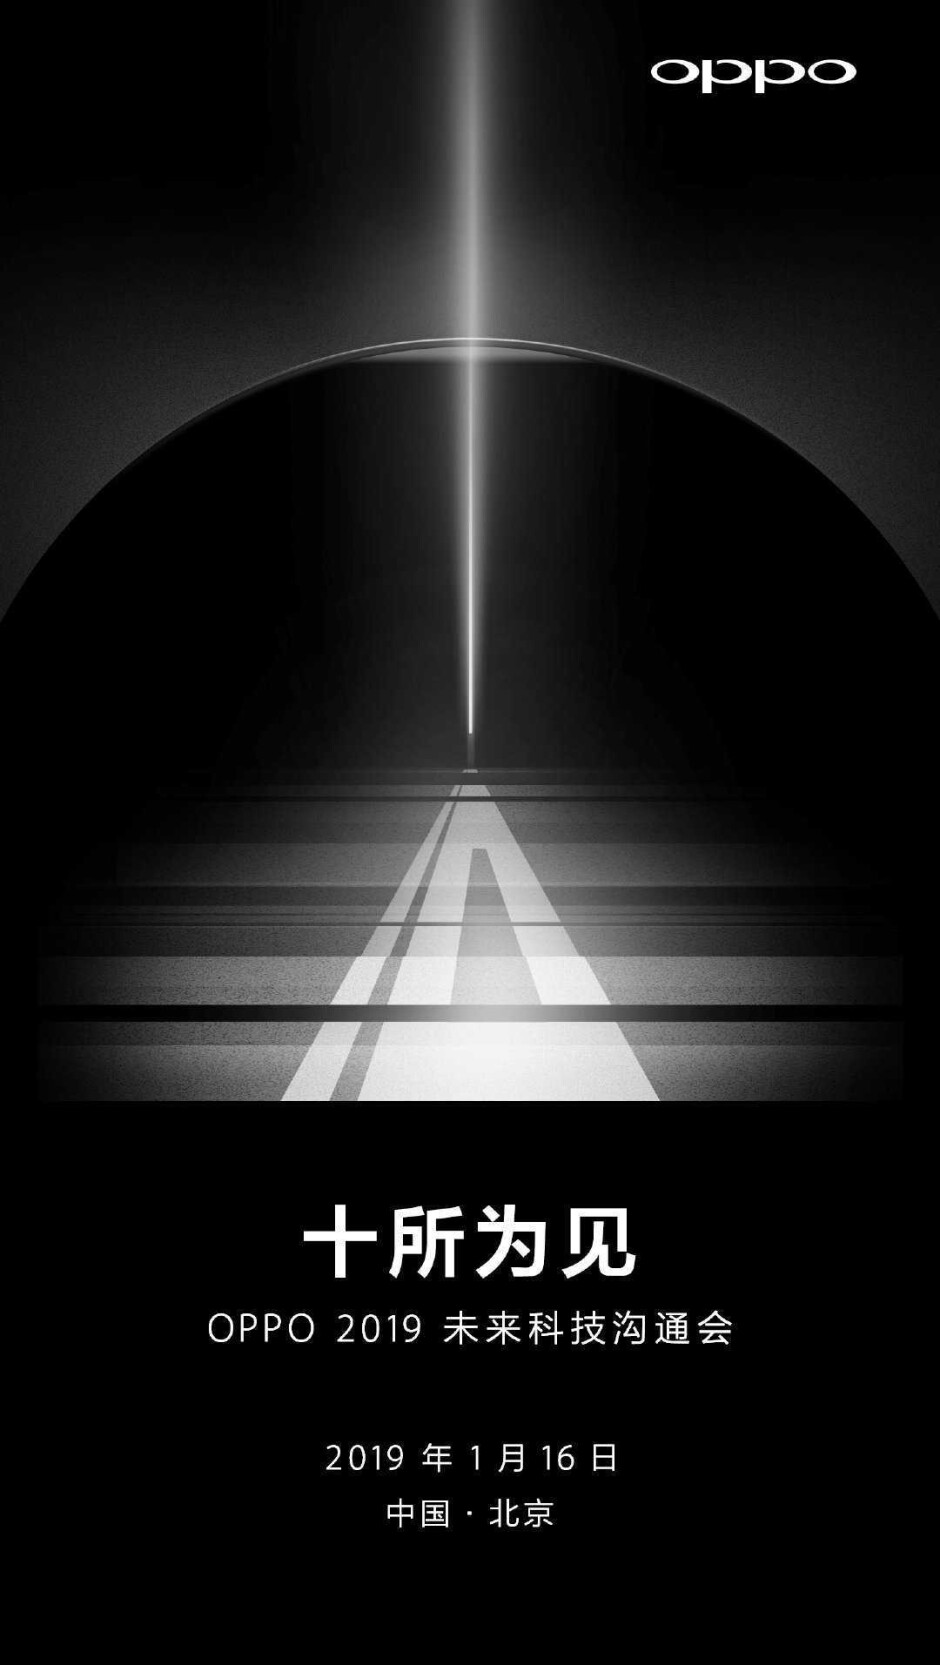 Leaked invitation hints at 10X hybrid optical zoom feature for new Oppo phones to be unveiled on January 16th - Will OnePlus 7 camera feature 10X hybrid optical zoom?